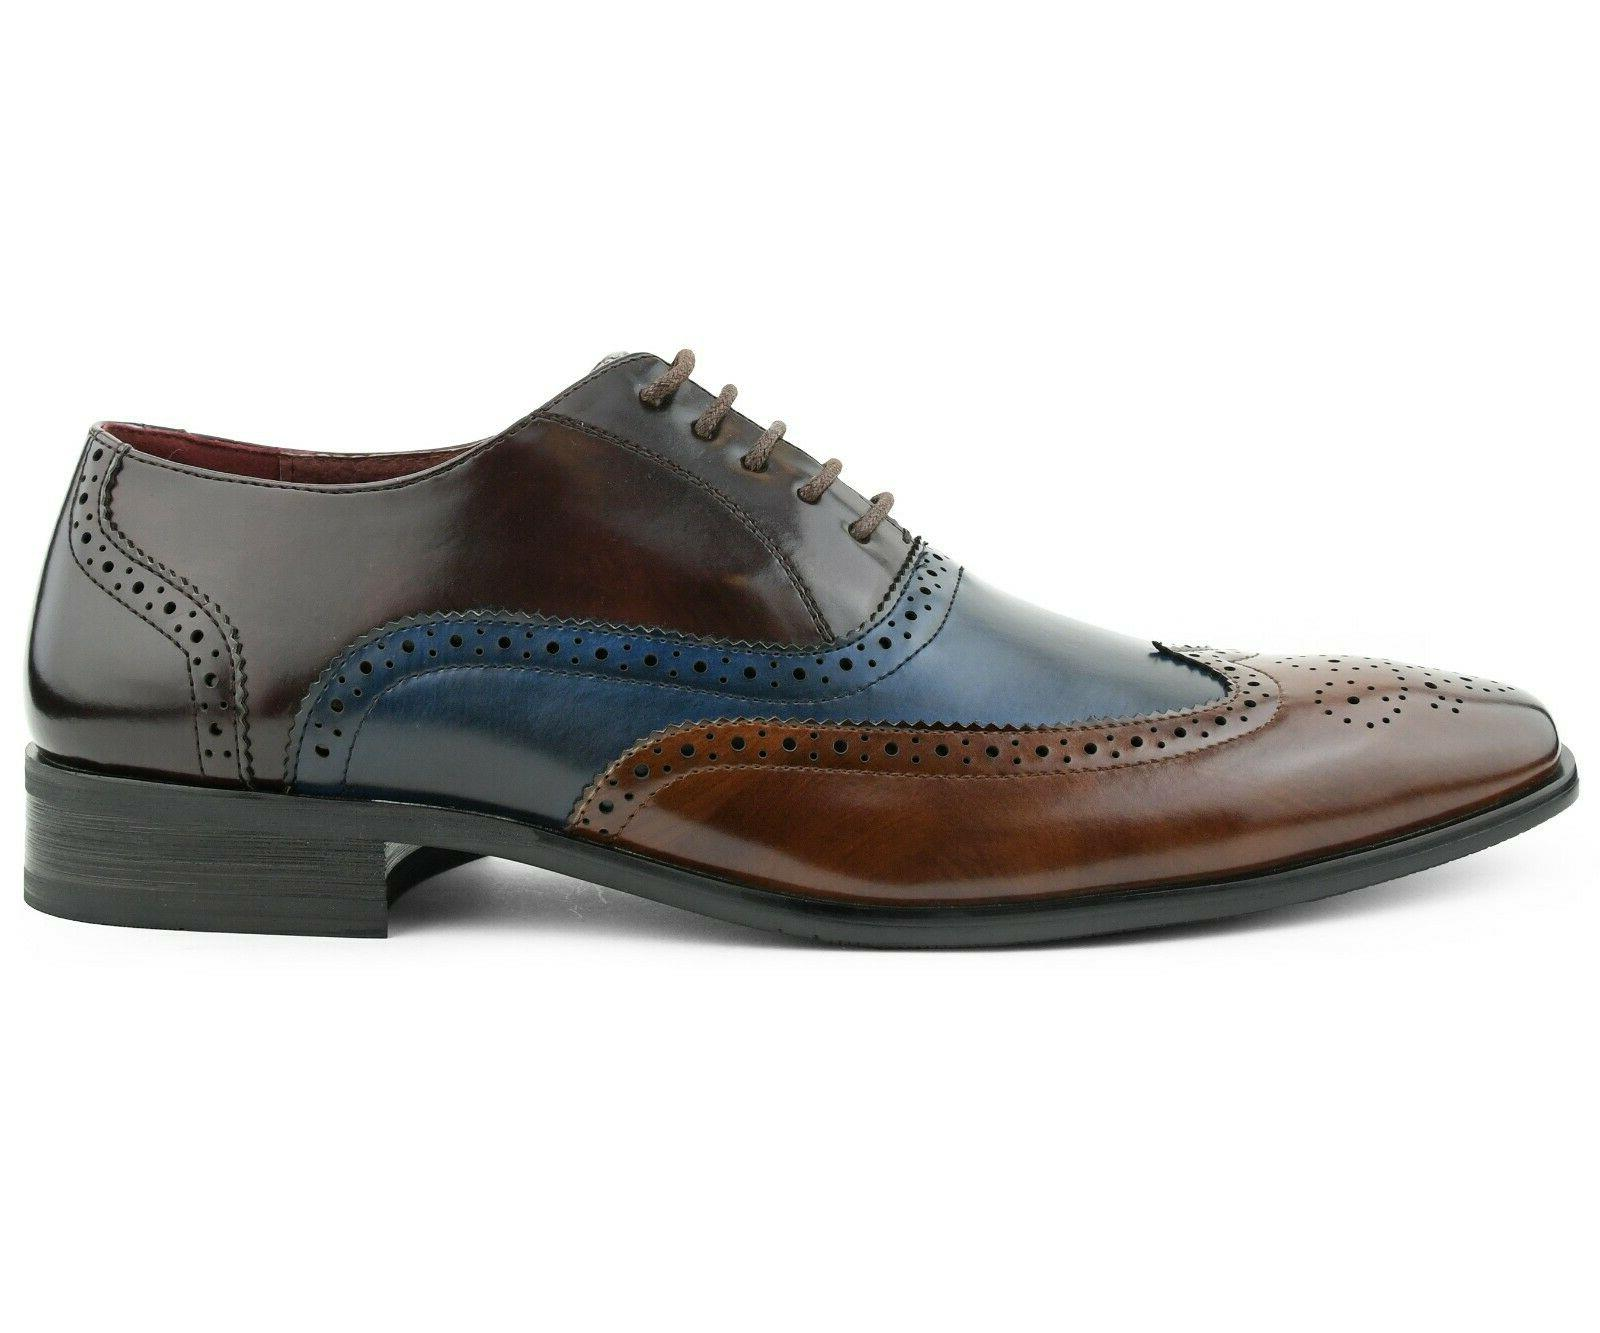 Men's Shoes - Manmade Leather Lace Up Shoes